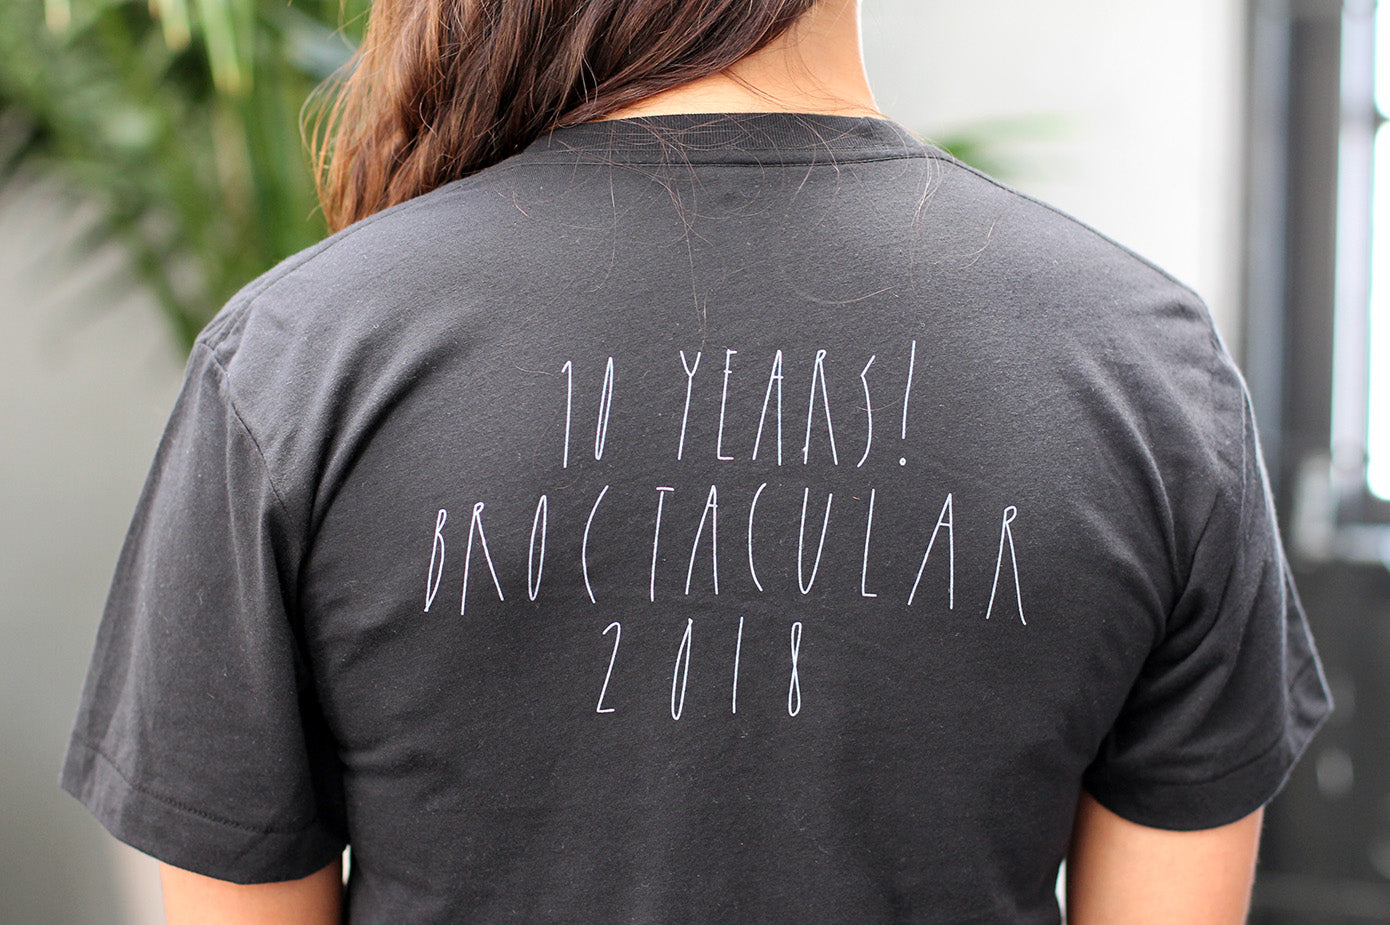 Broctacular 10 Years T-Shirt